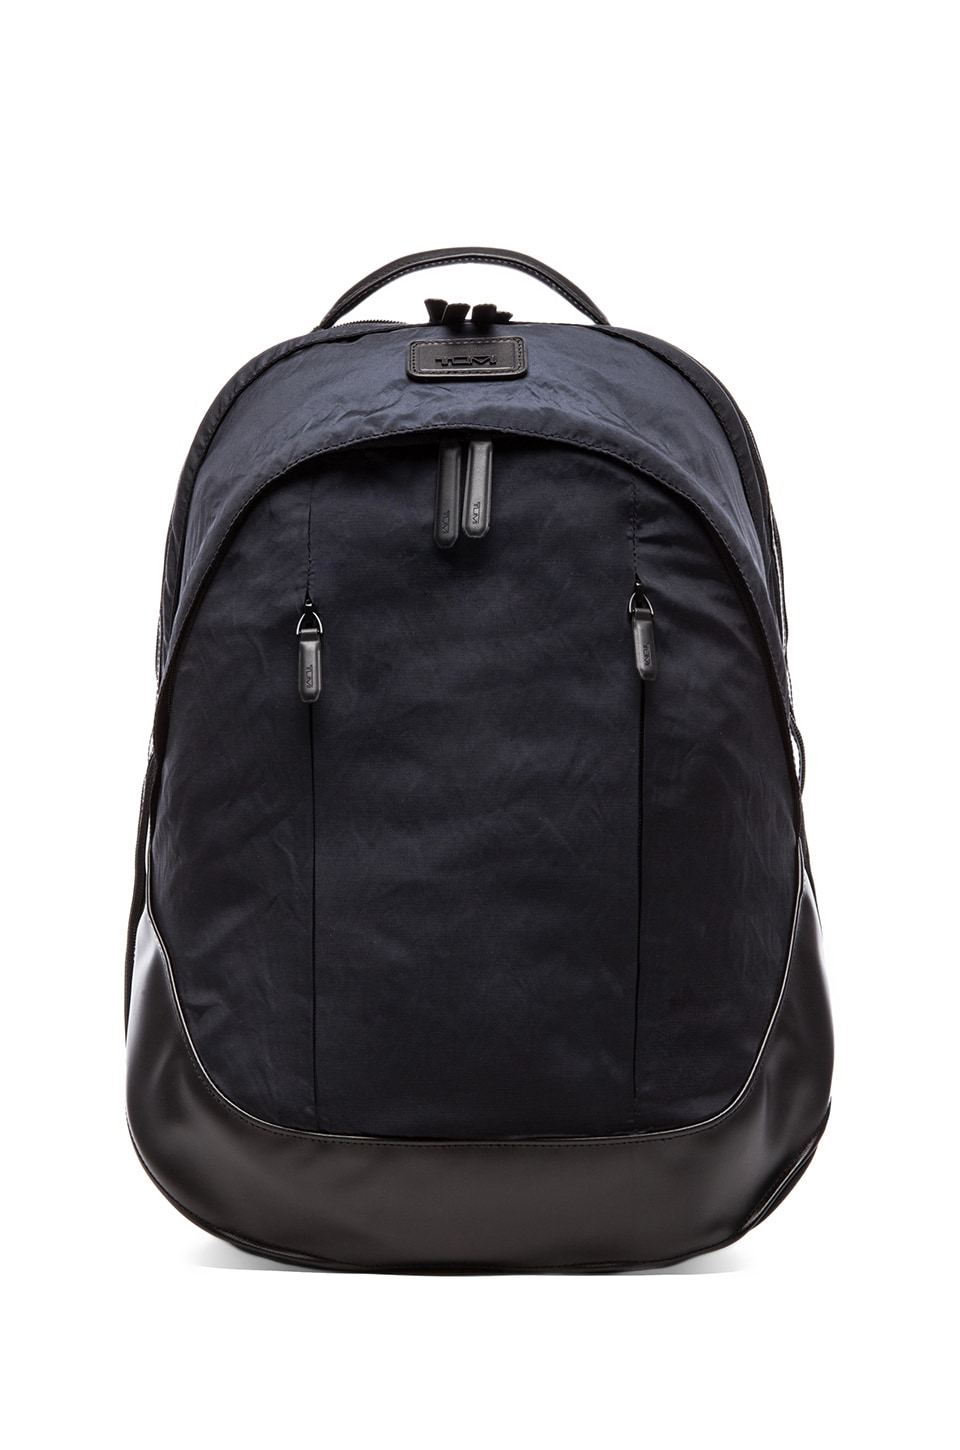 Tumi Courage Backpack in Raven